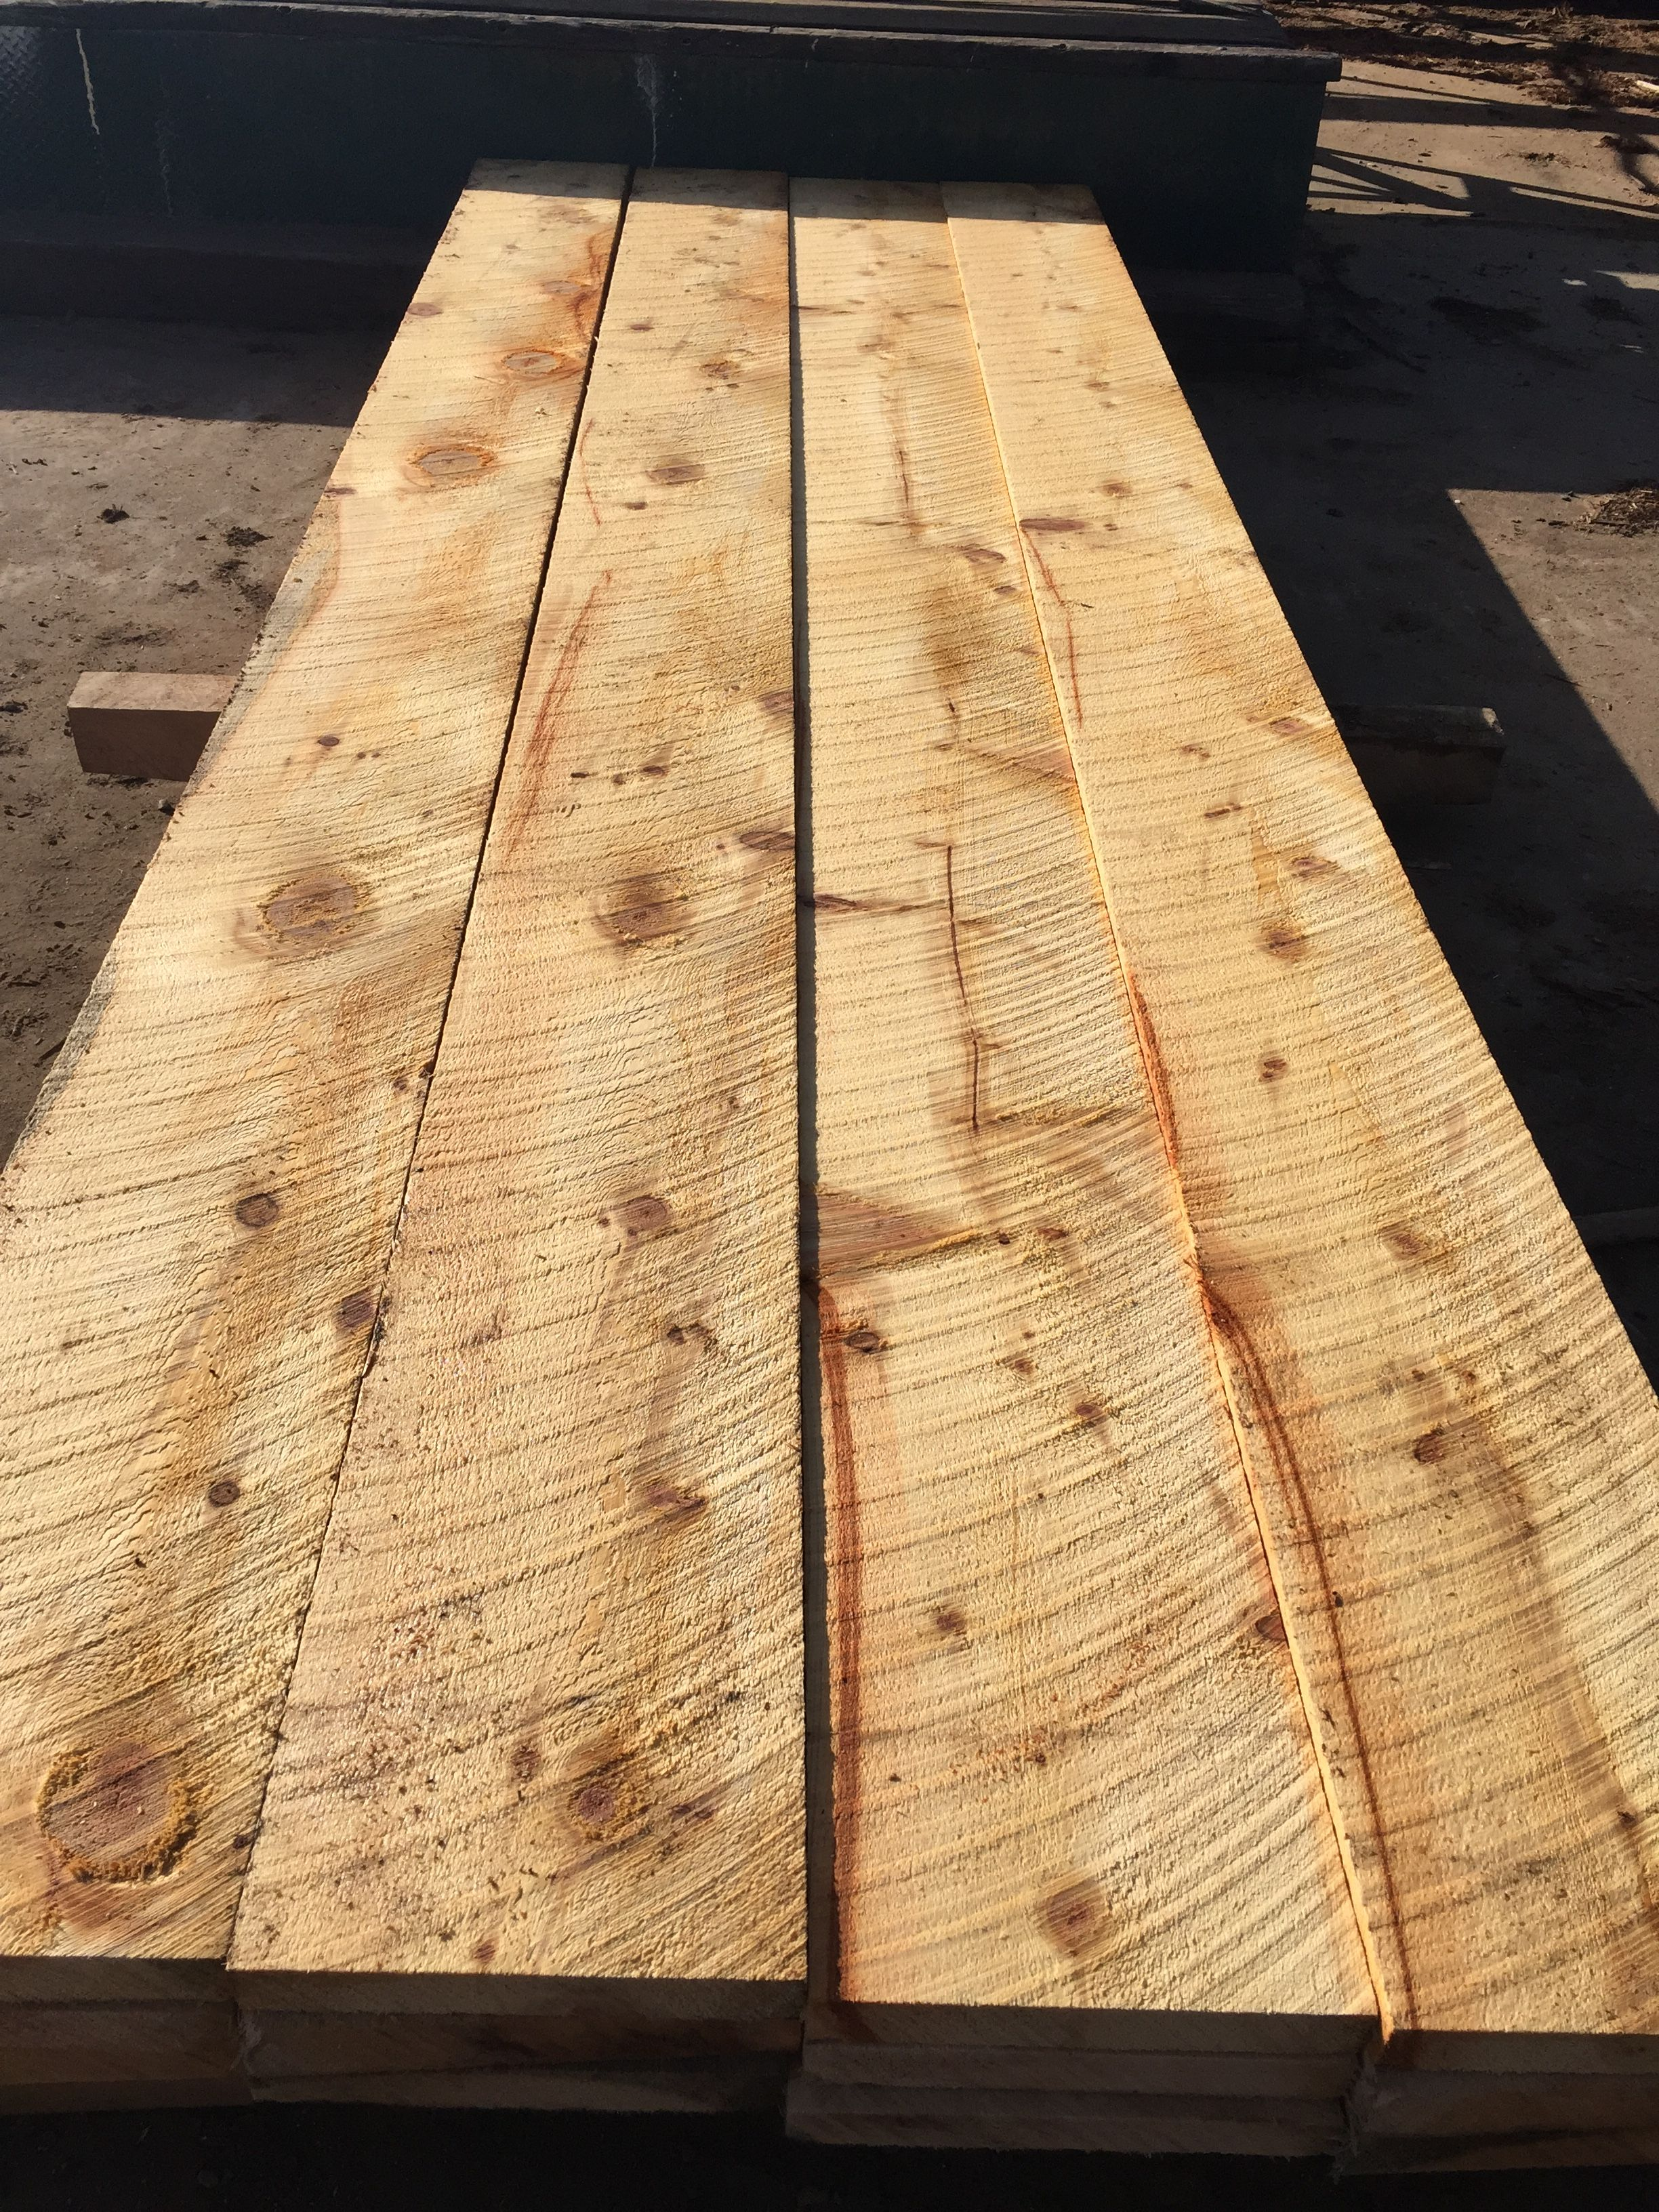 This Is A Rustic Rough Cut Timber With The Saw Marks Still Showing